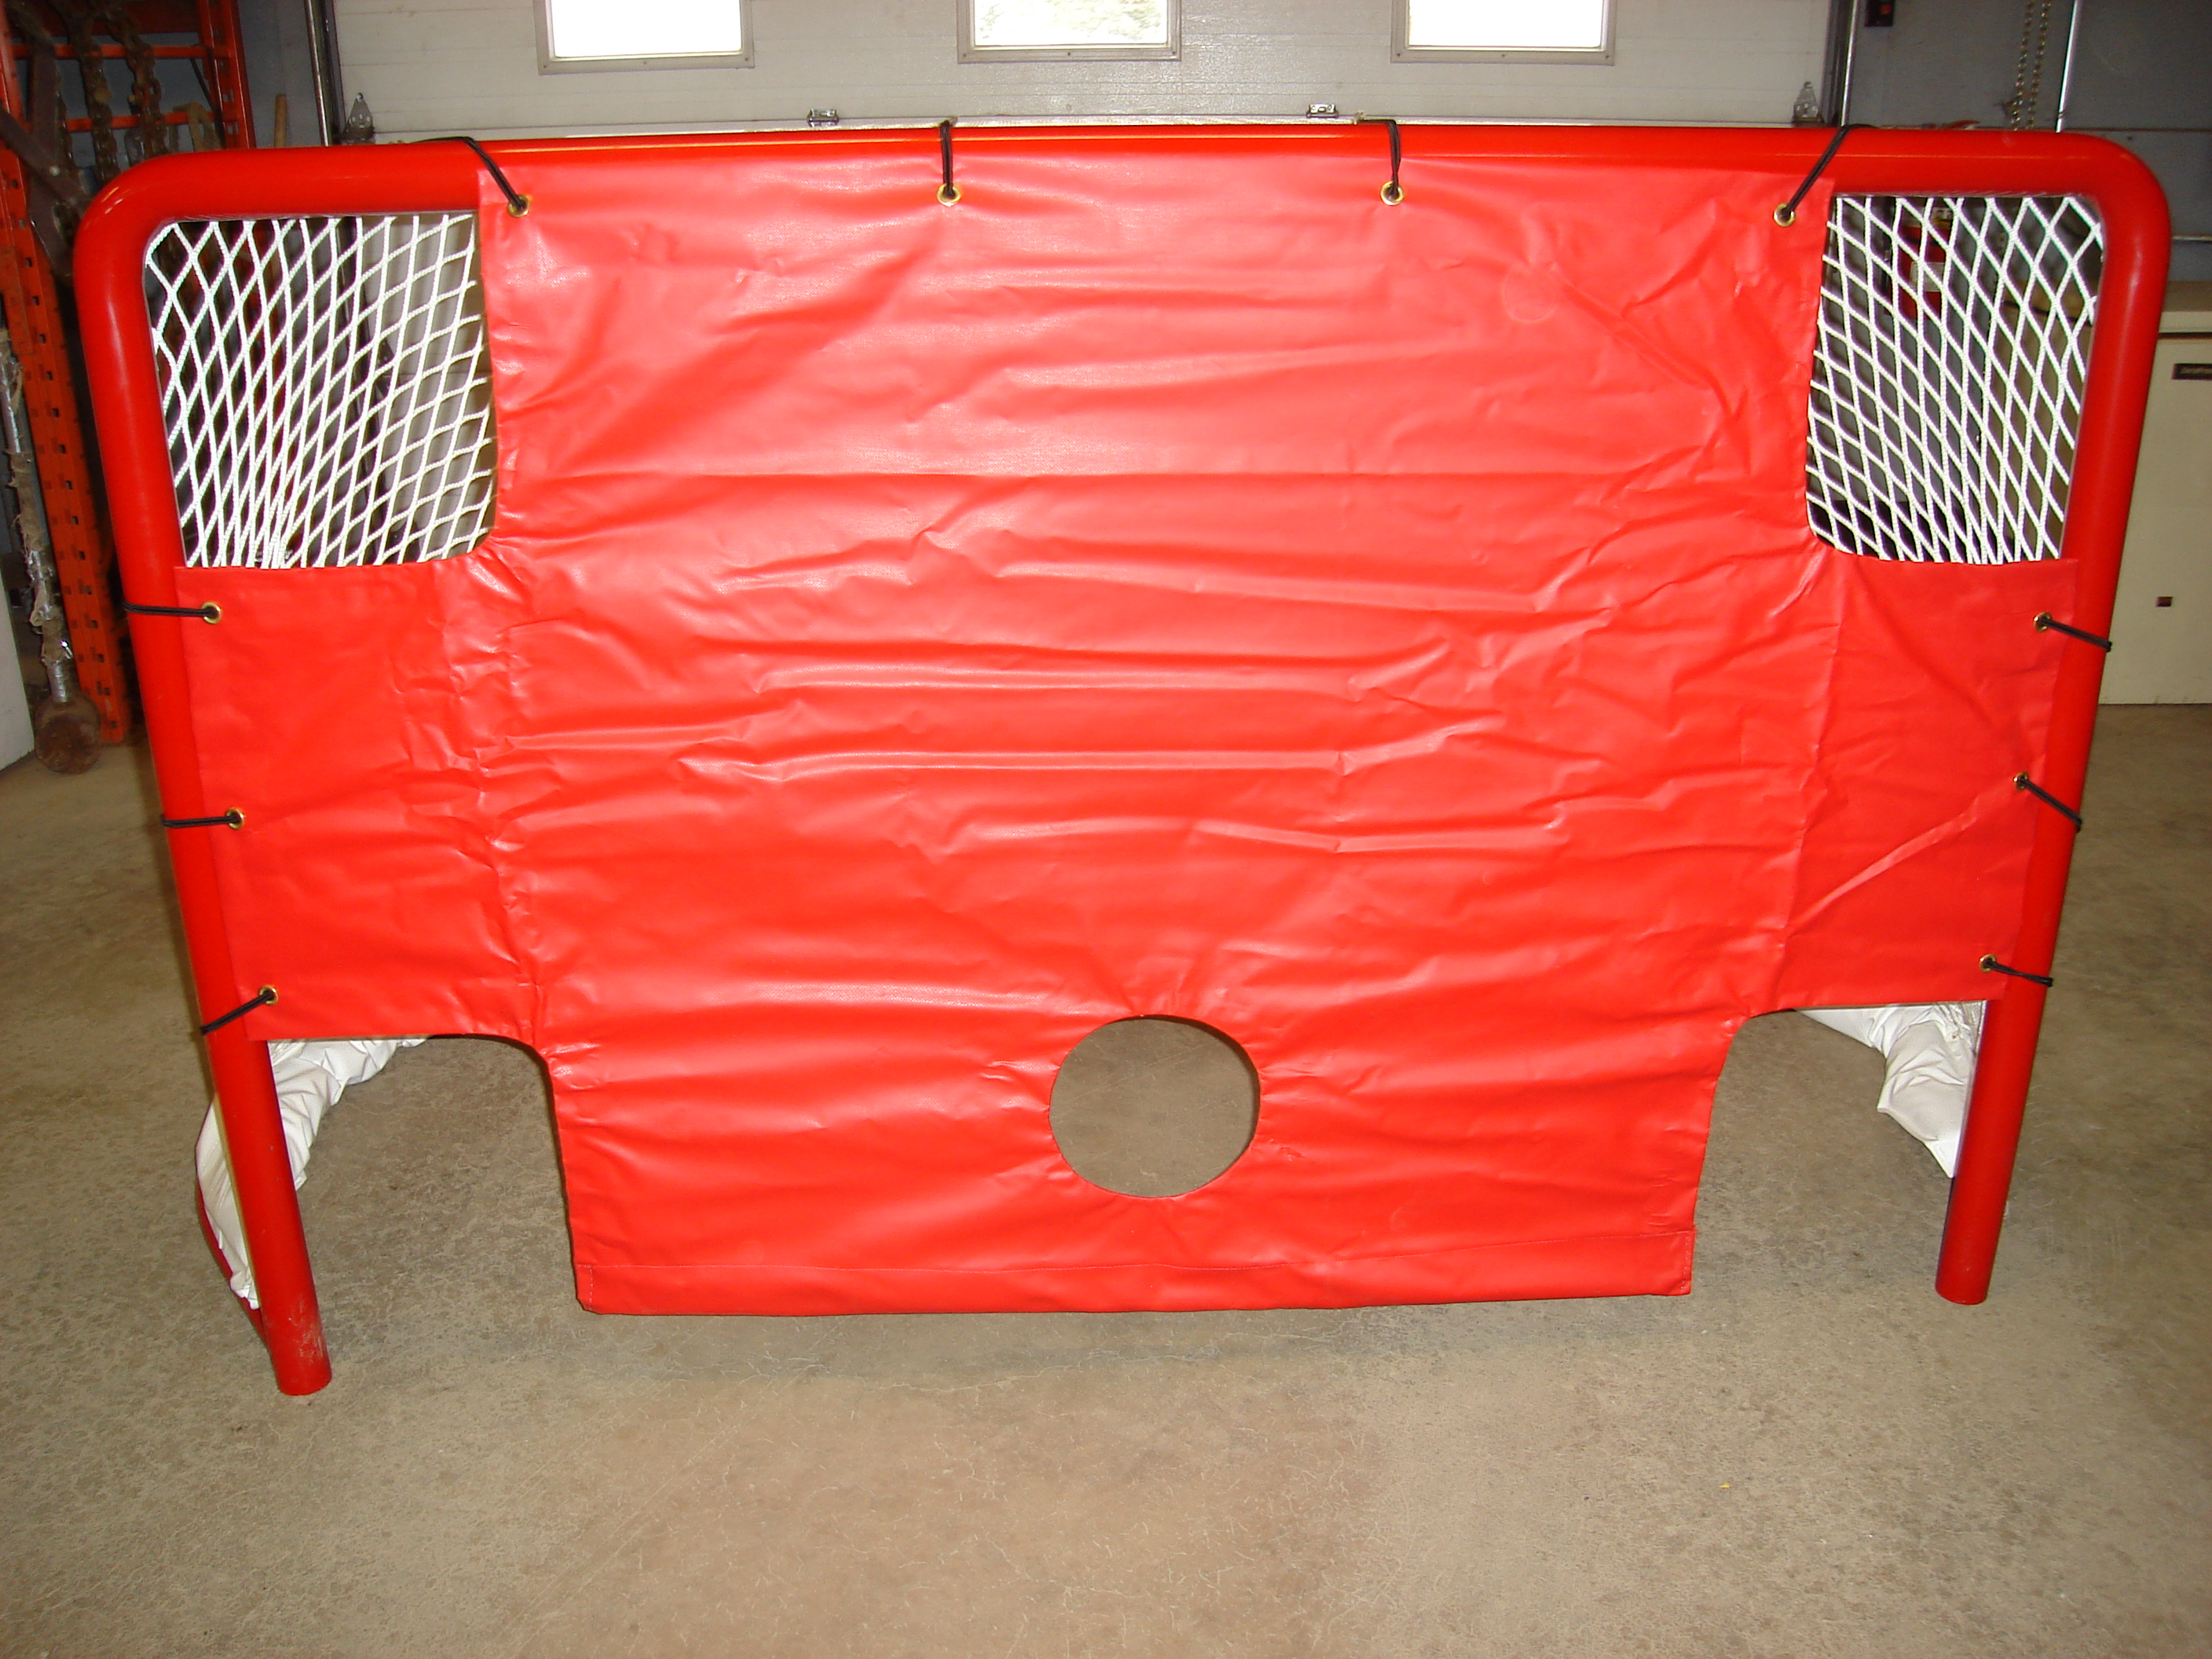 Shooter Tutor - Red